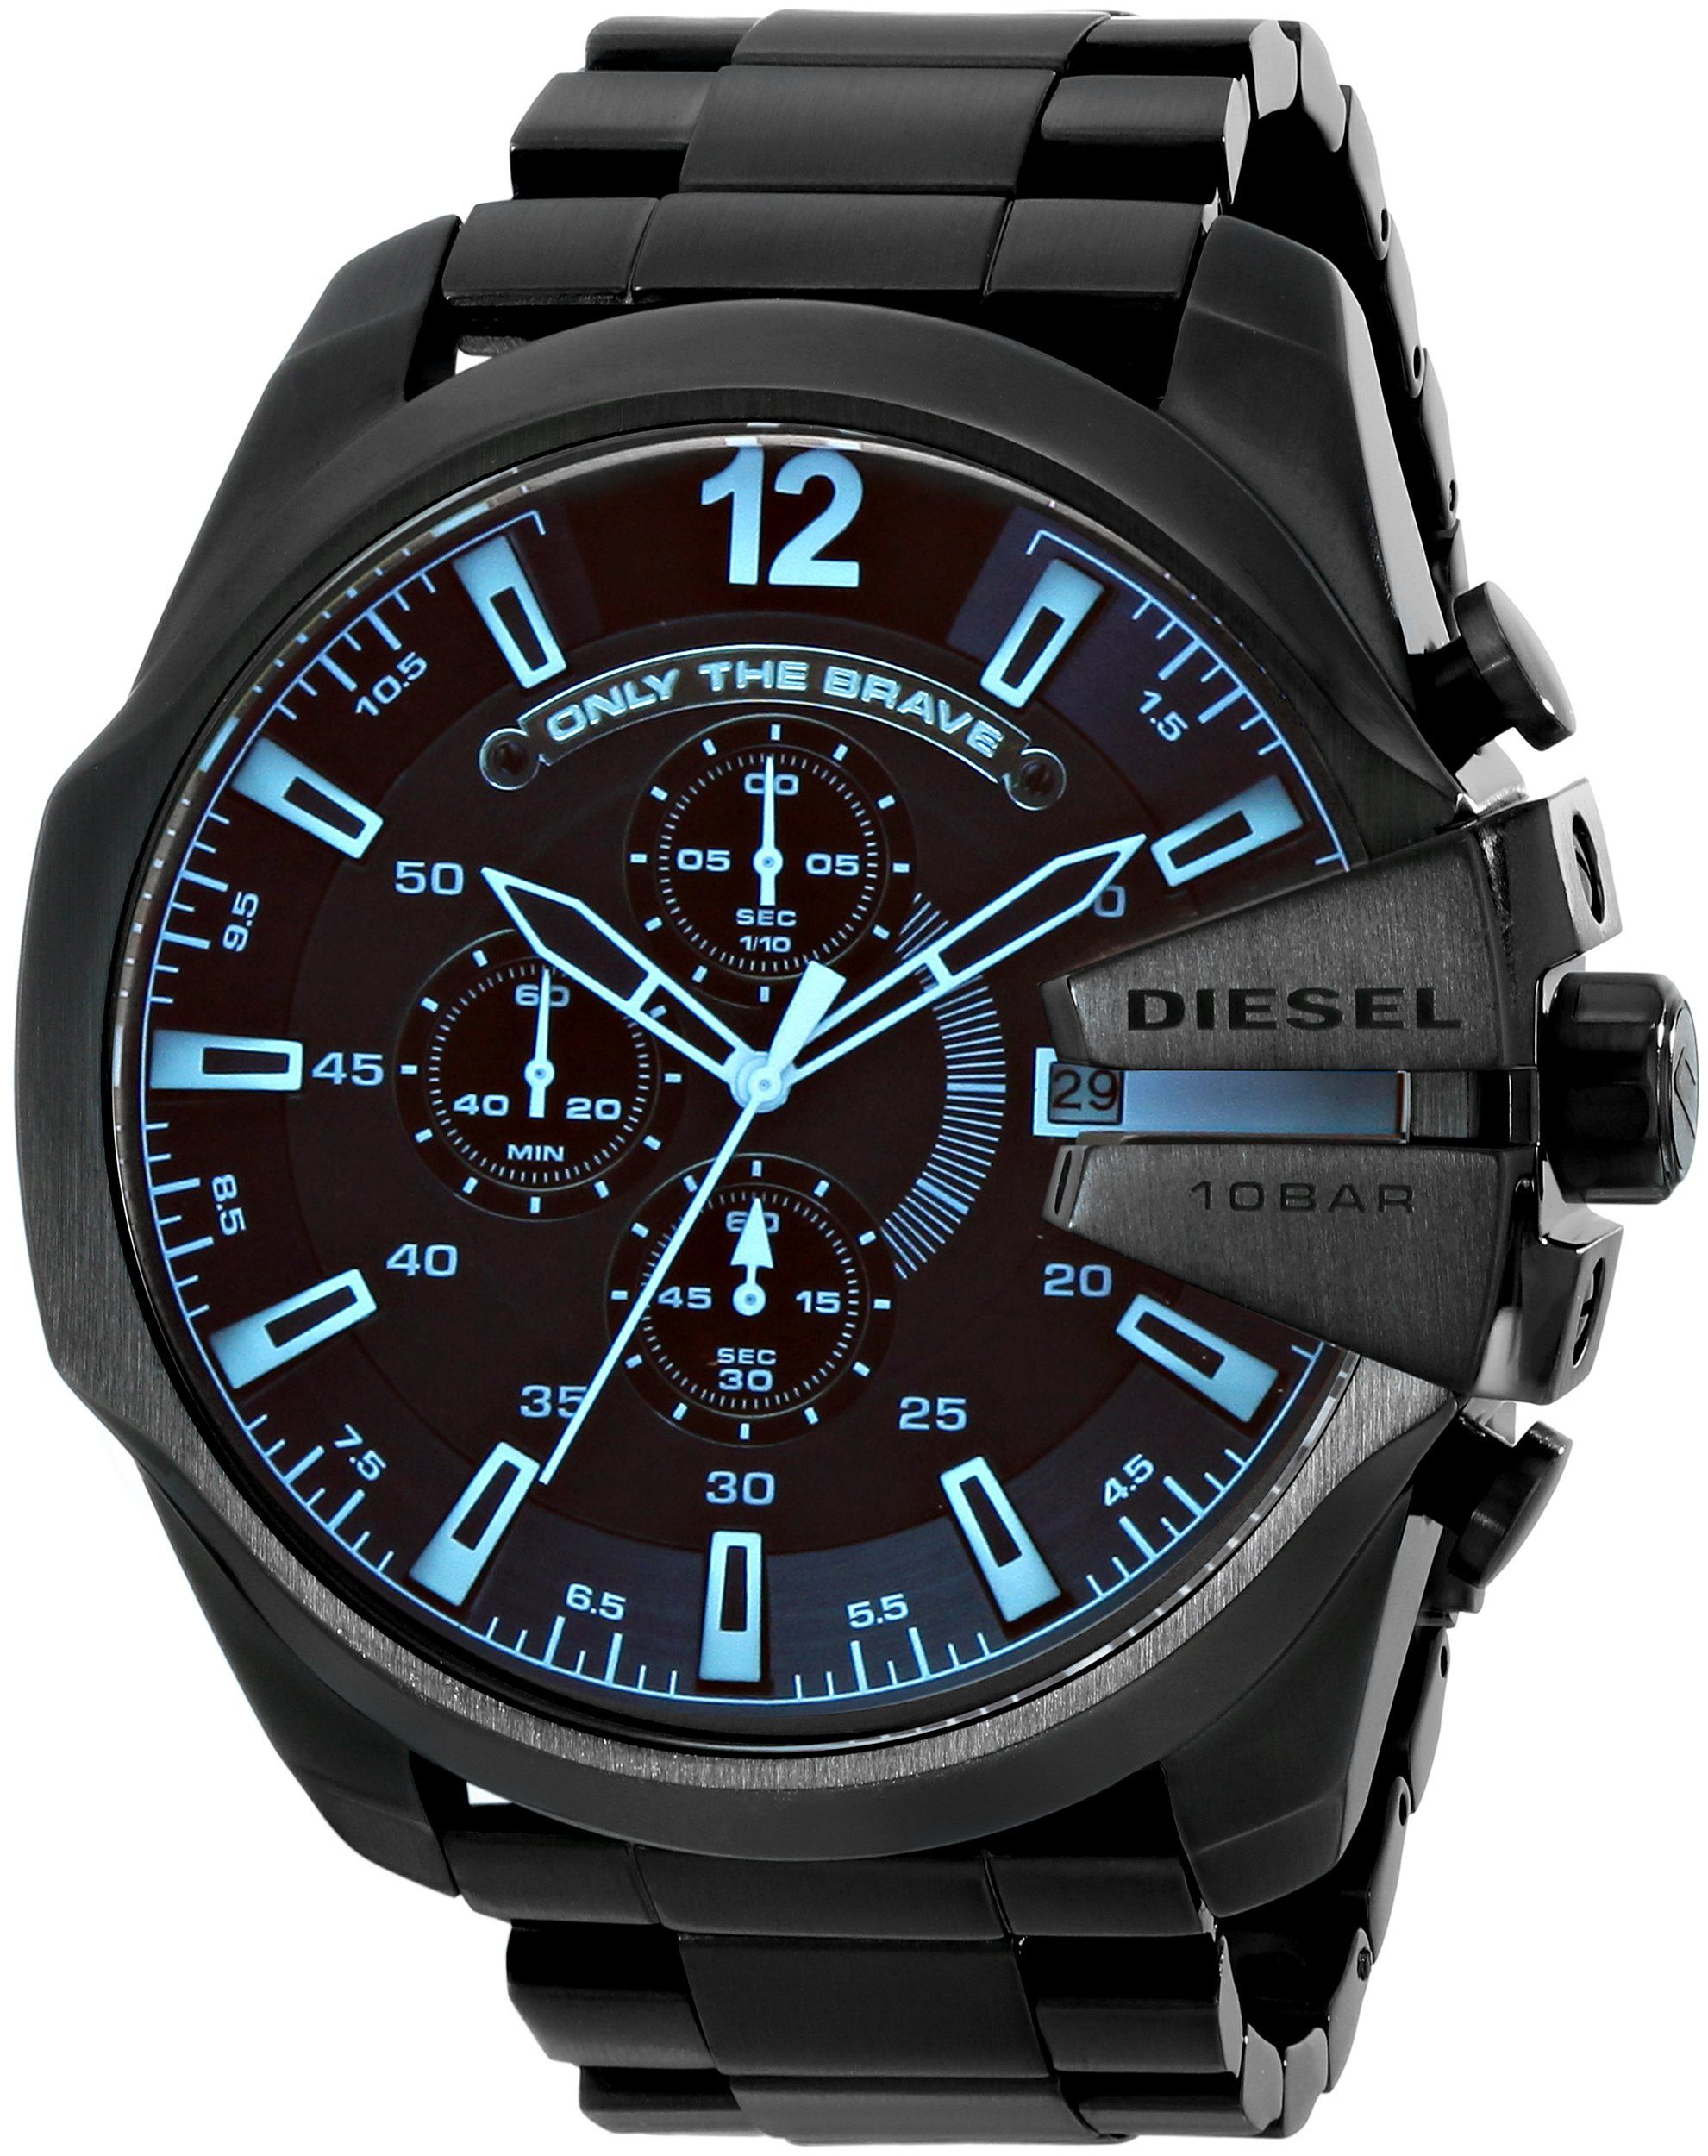 f7f4b713beb Amazon.com  Diesel Men s DZ4318 Diesel Chief Series Analog Display Analog  Quartz Black Watch  Diesel  Watches